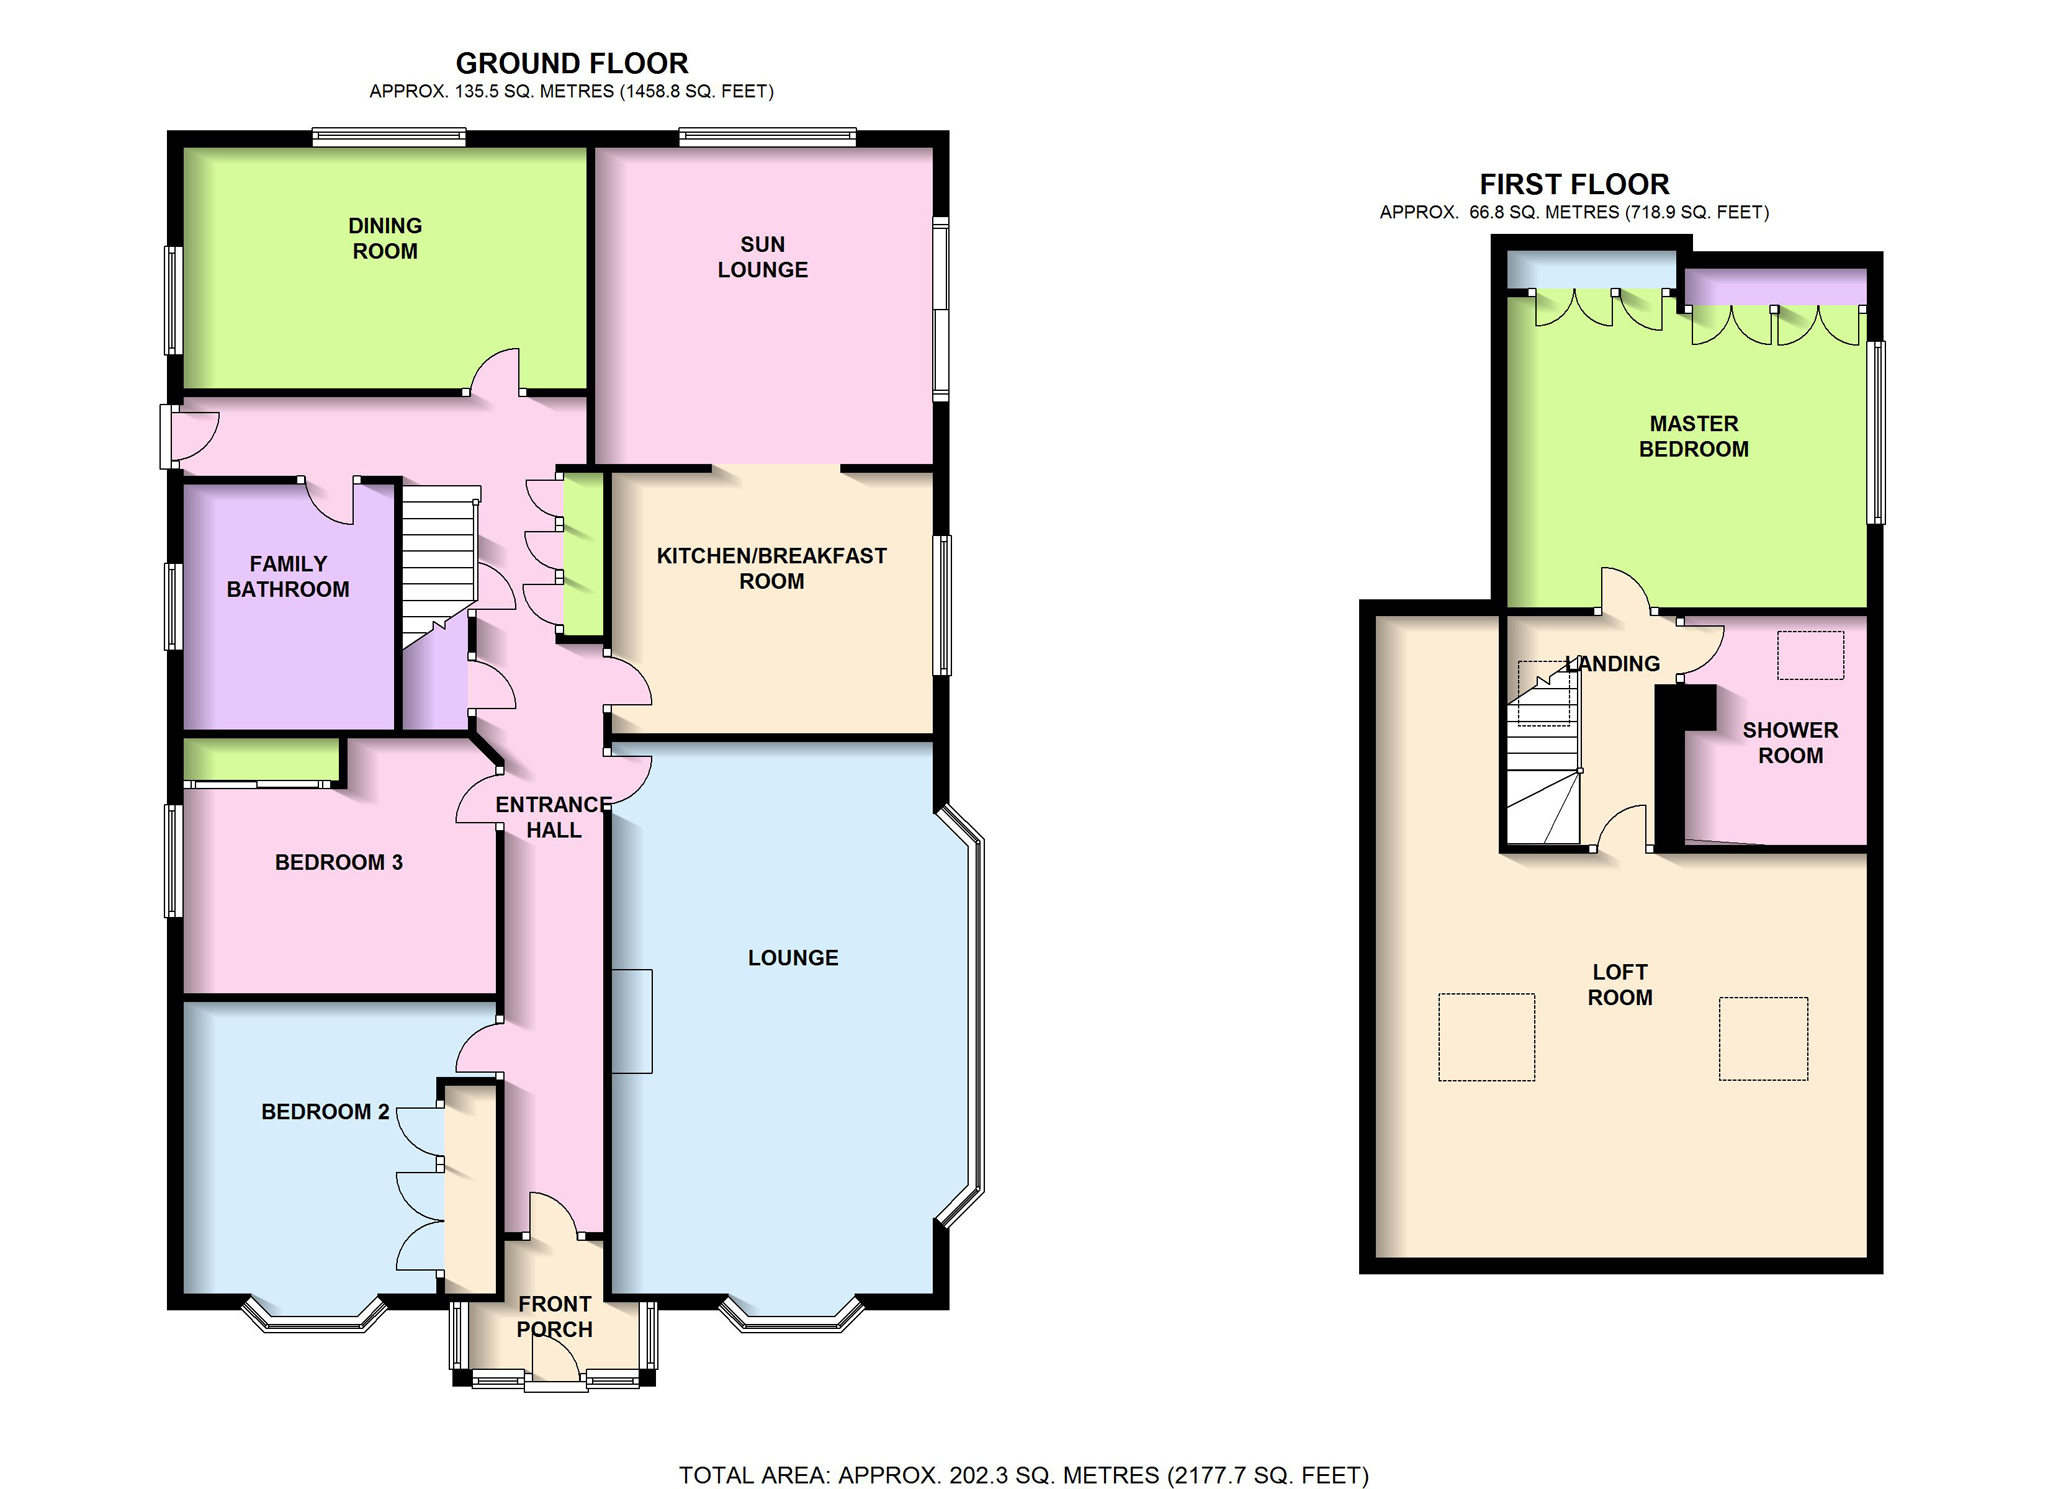 Swimming pool layouts besides house floor plan layout in addition